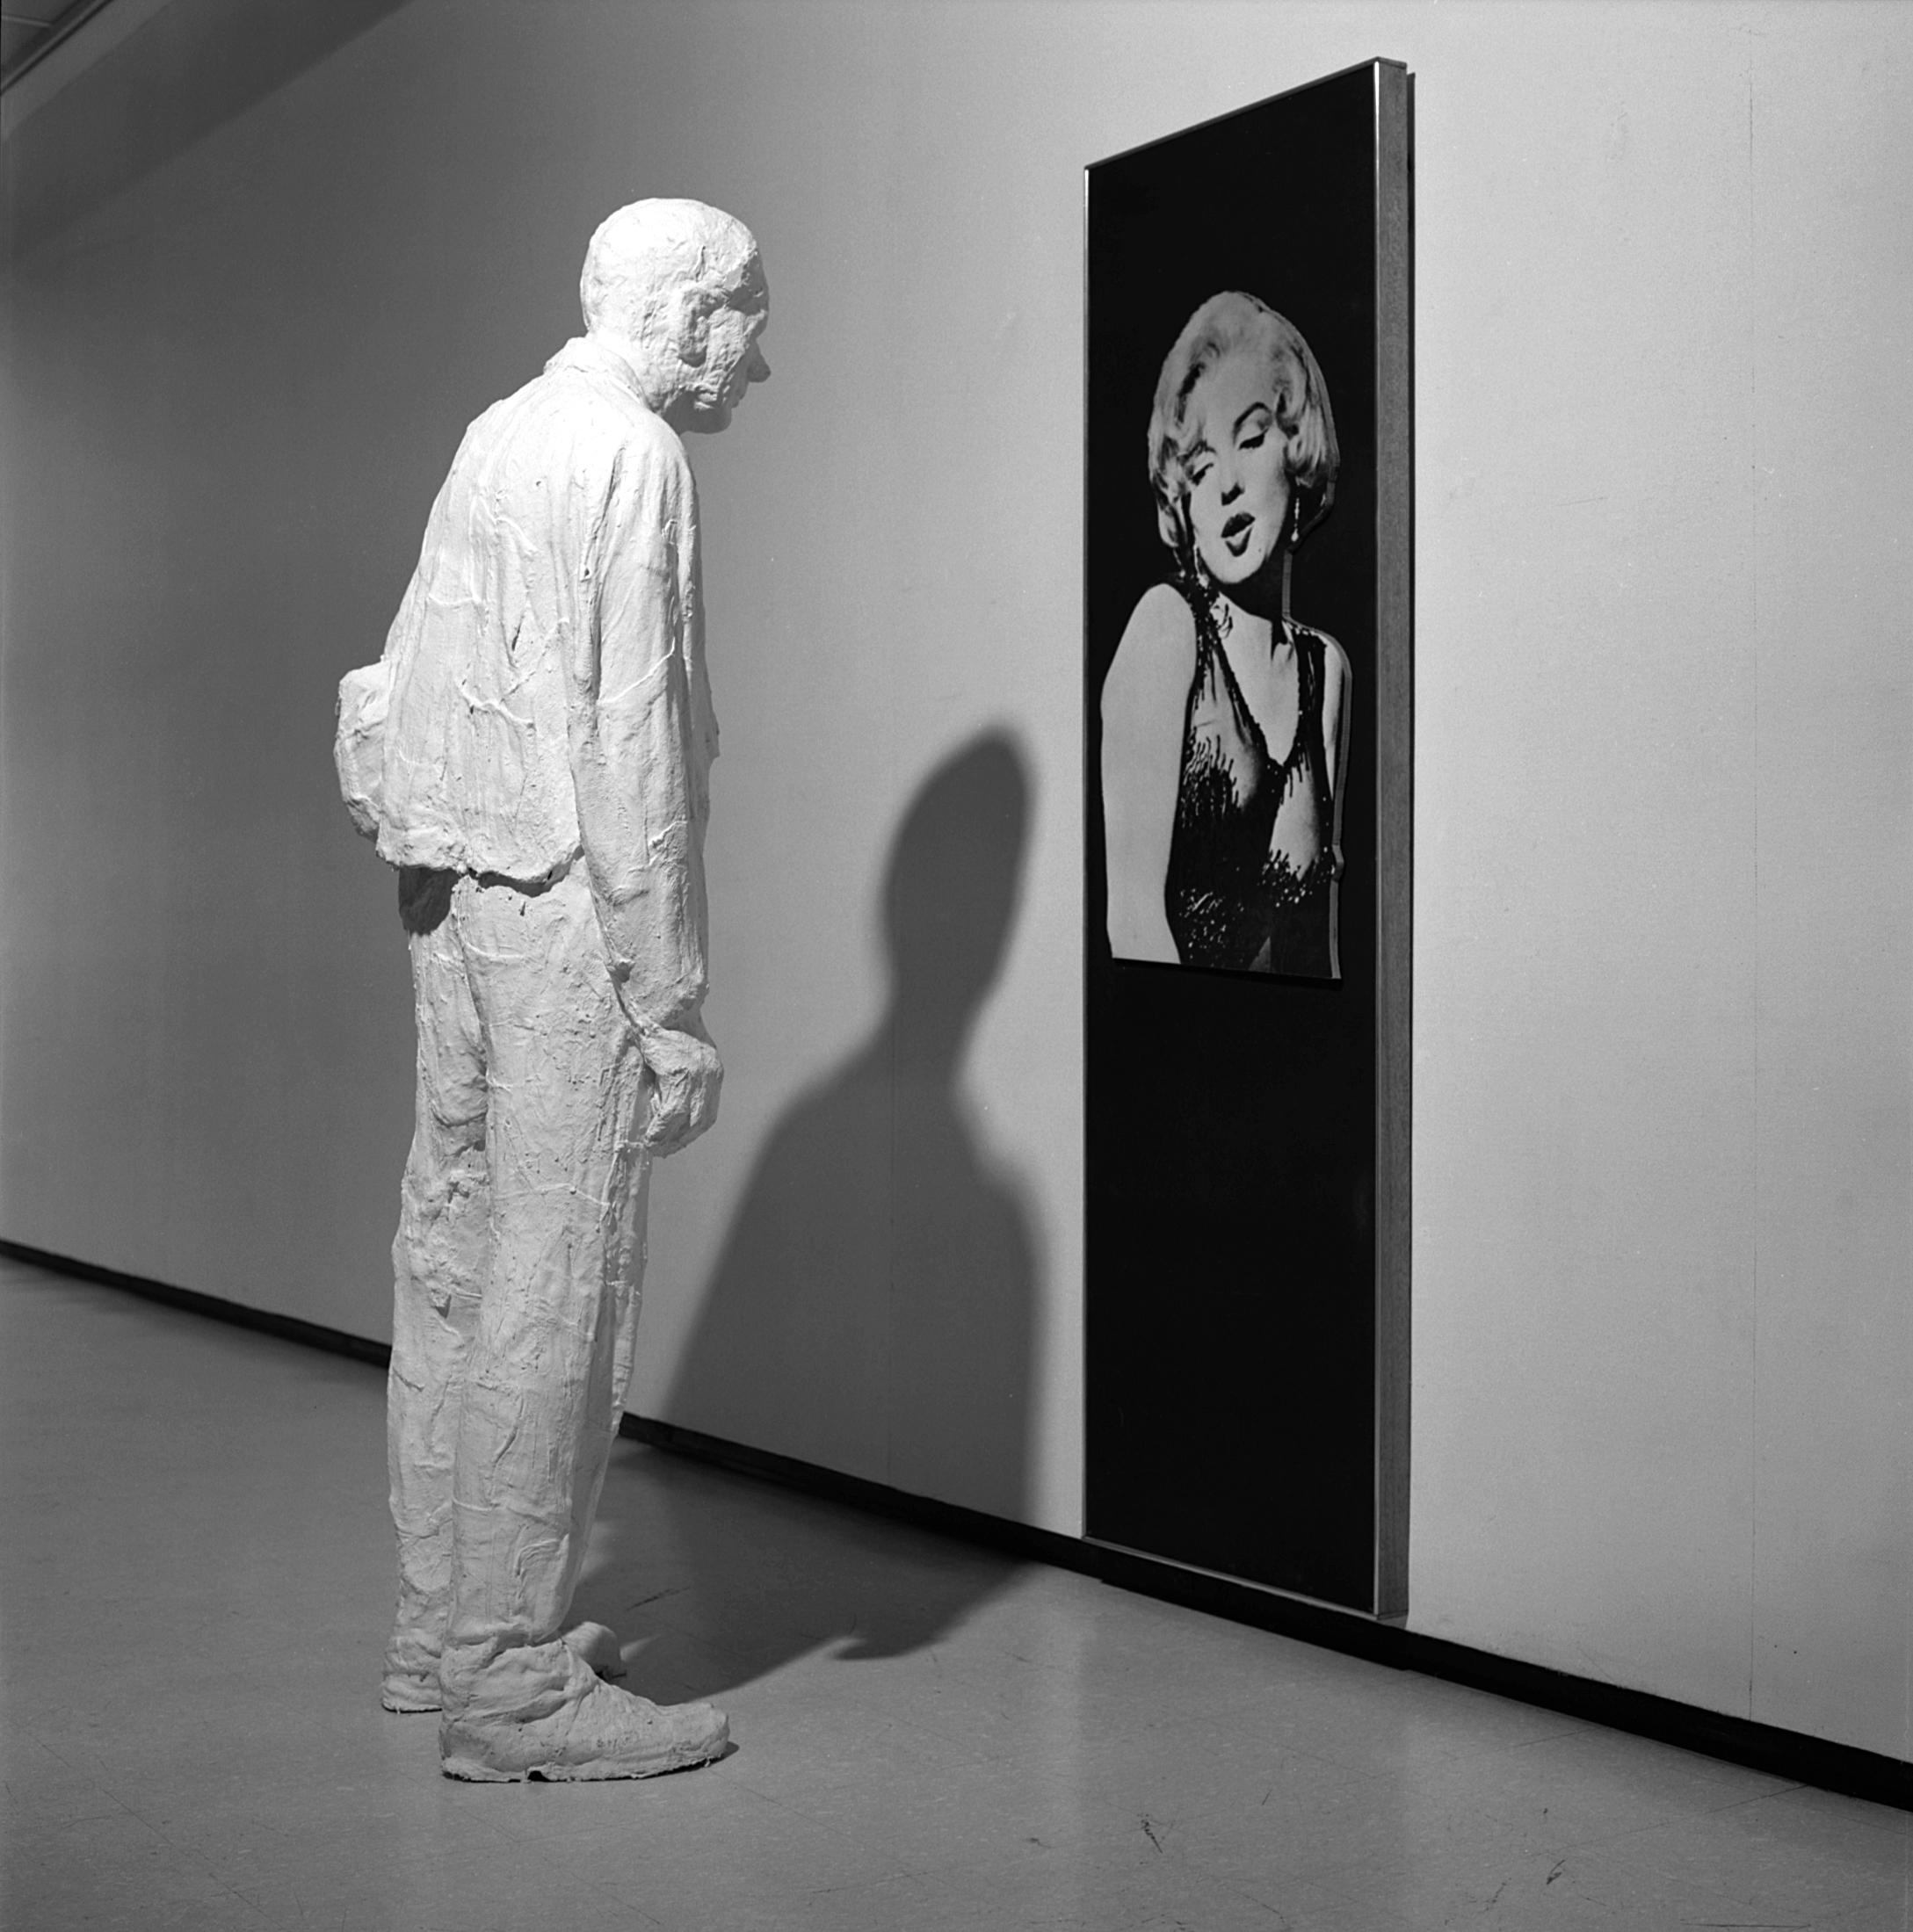 A black-and-white photo shows a white plaster figure of a man in work clothes stands facing a large, vertical, rectangular photograph of an extremely attractive blond woman.